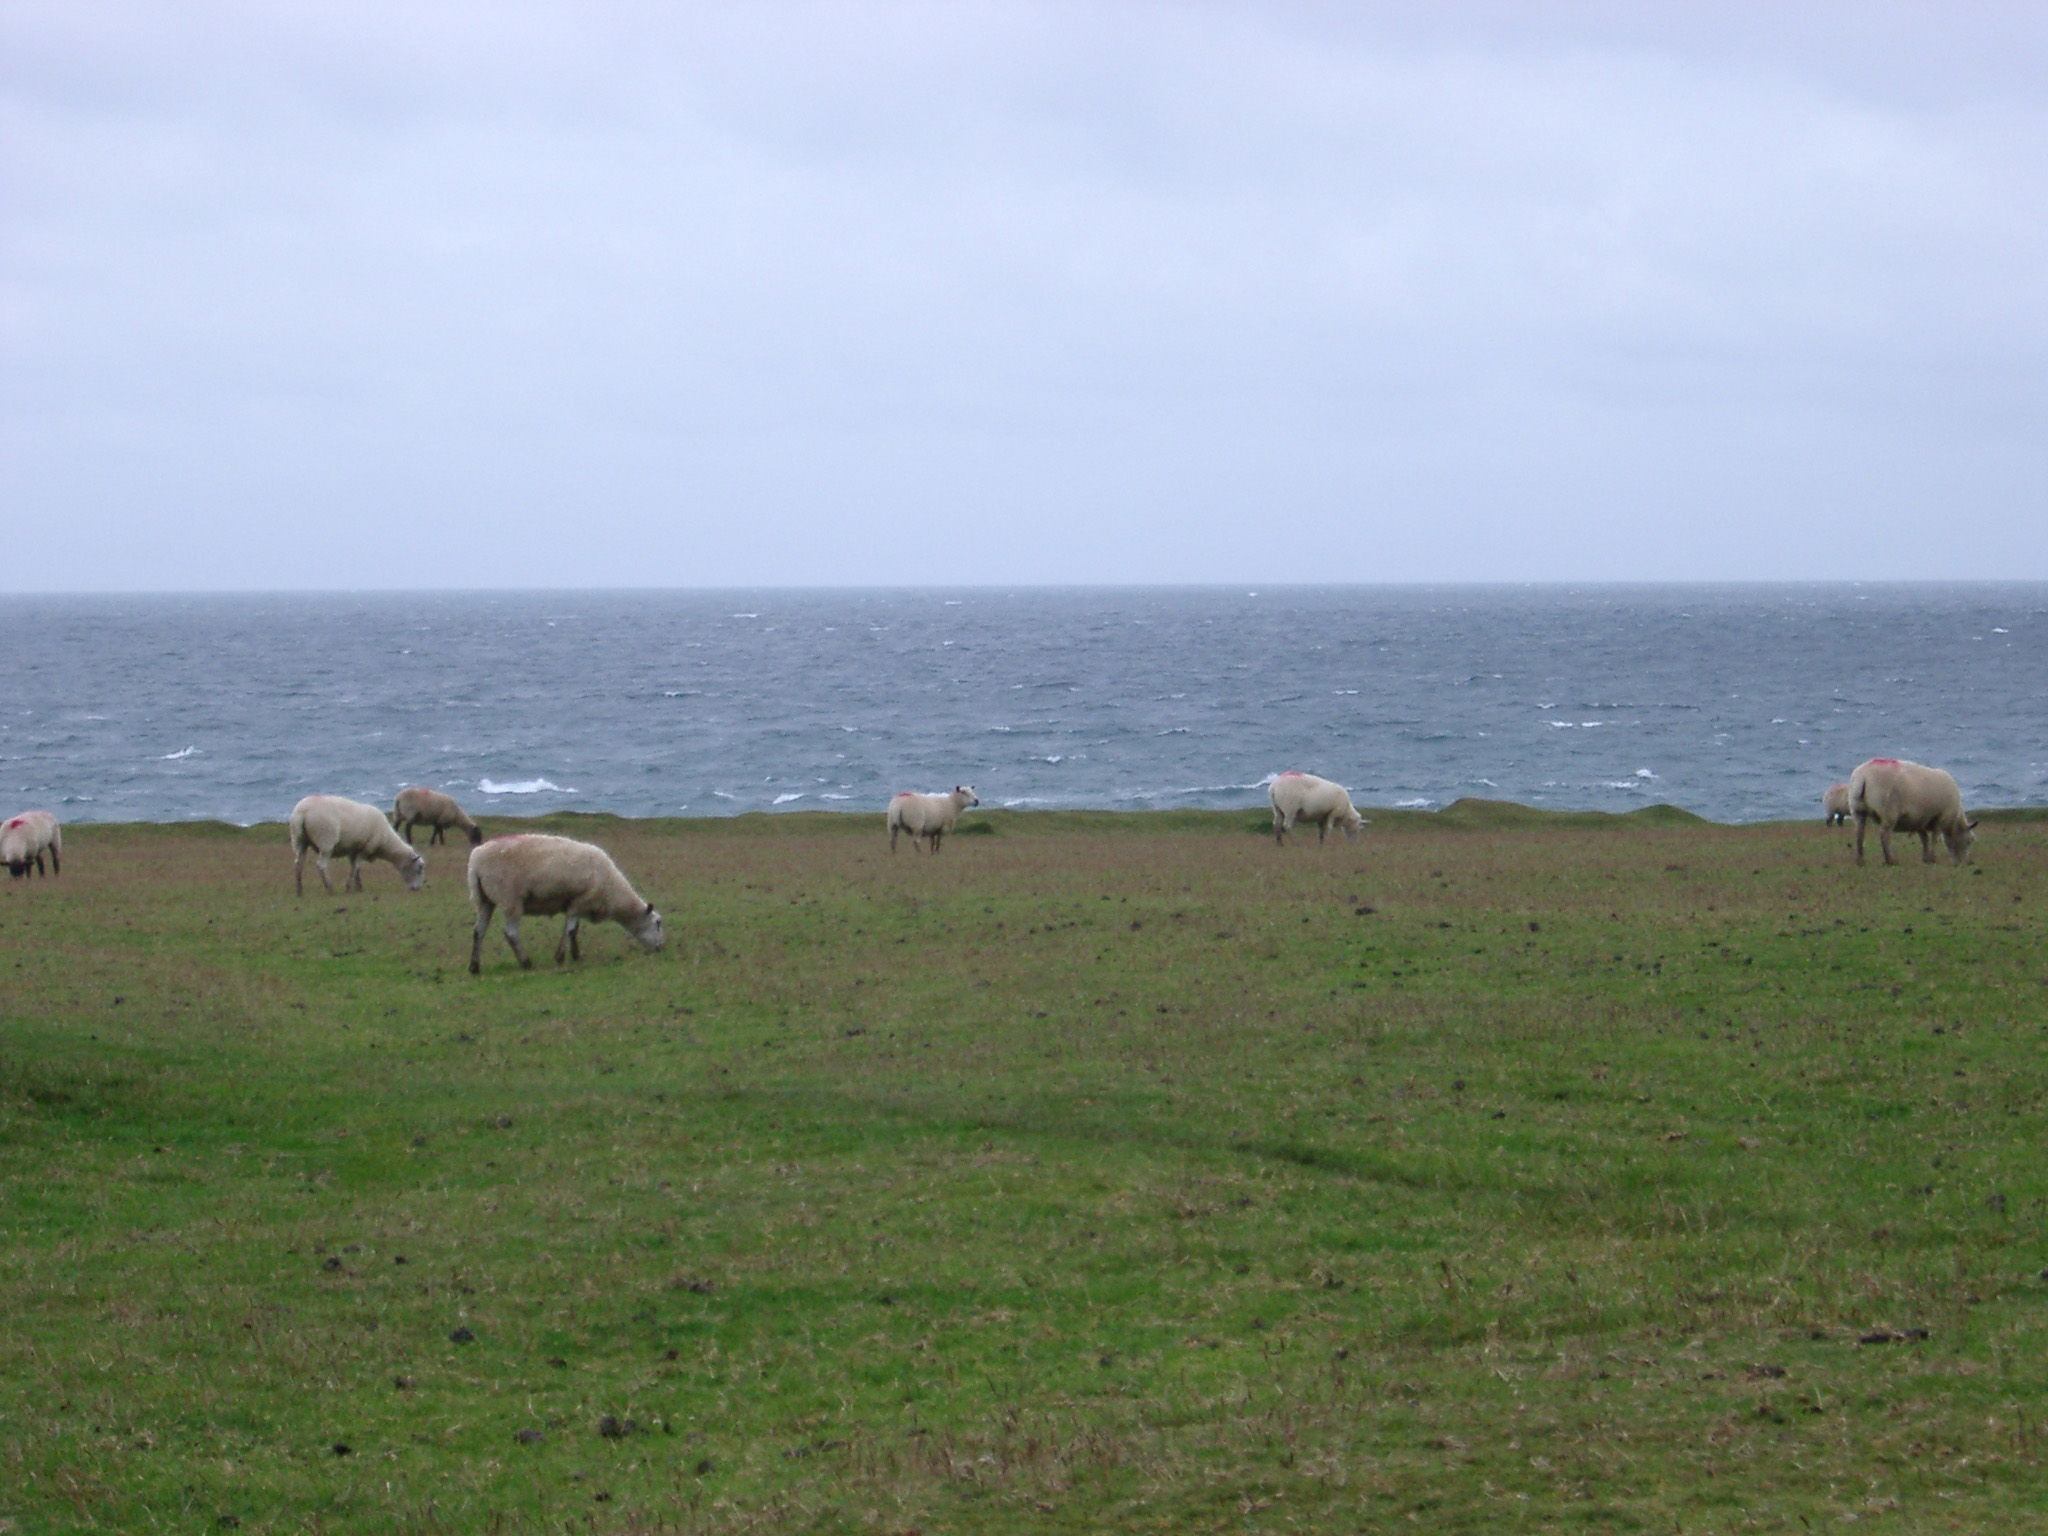 Flock of sheep grazing in a windswept coastal pasture overlooking a choppy ocean on a grey overcast day